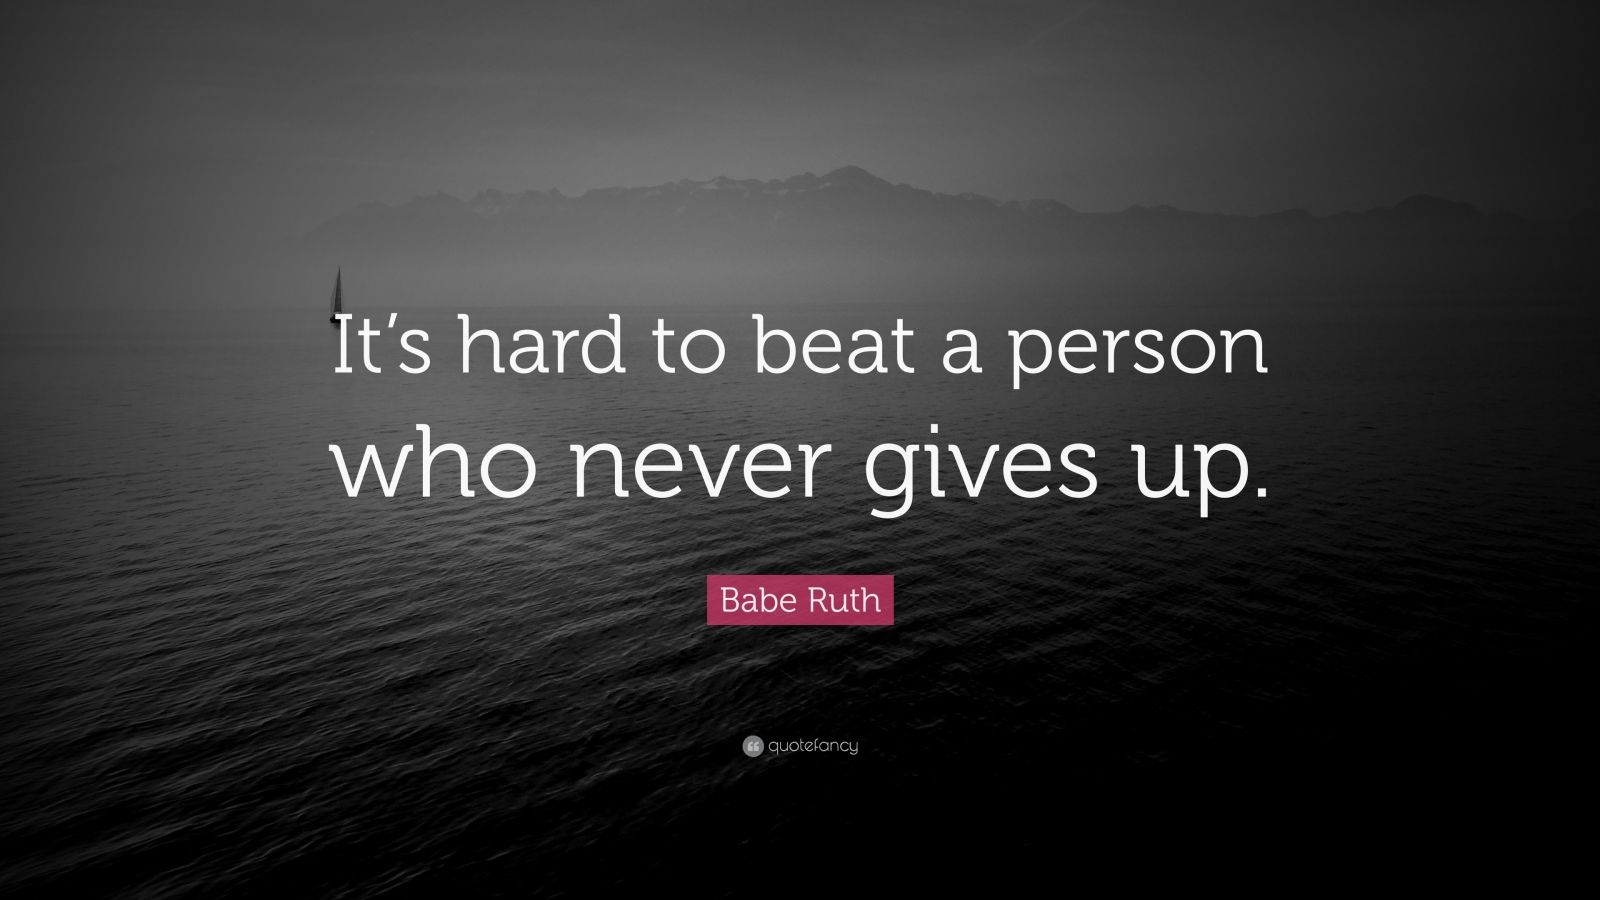 Steve Jobs Motivational Quotes Wallpaper Babe Ruth Quote It S Hard To Beat A Person Who Never